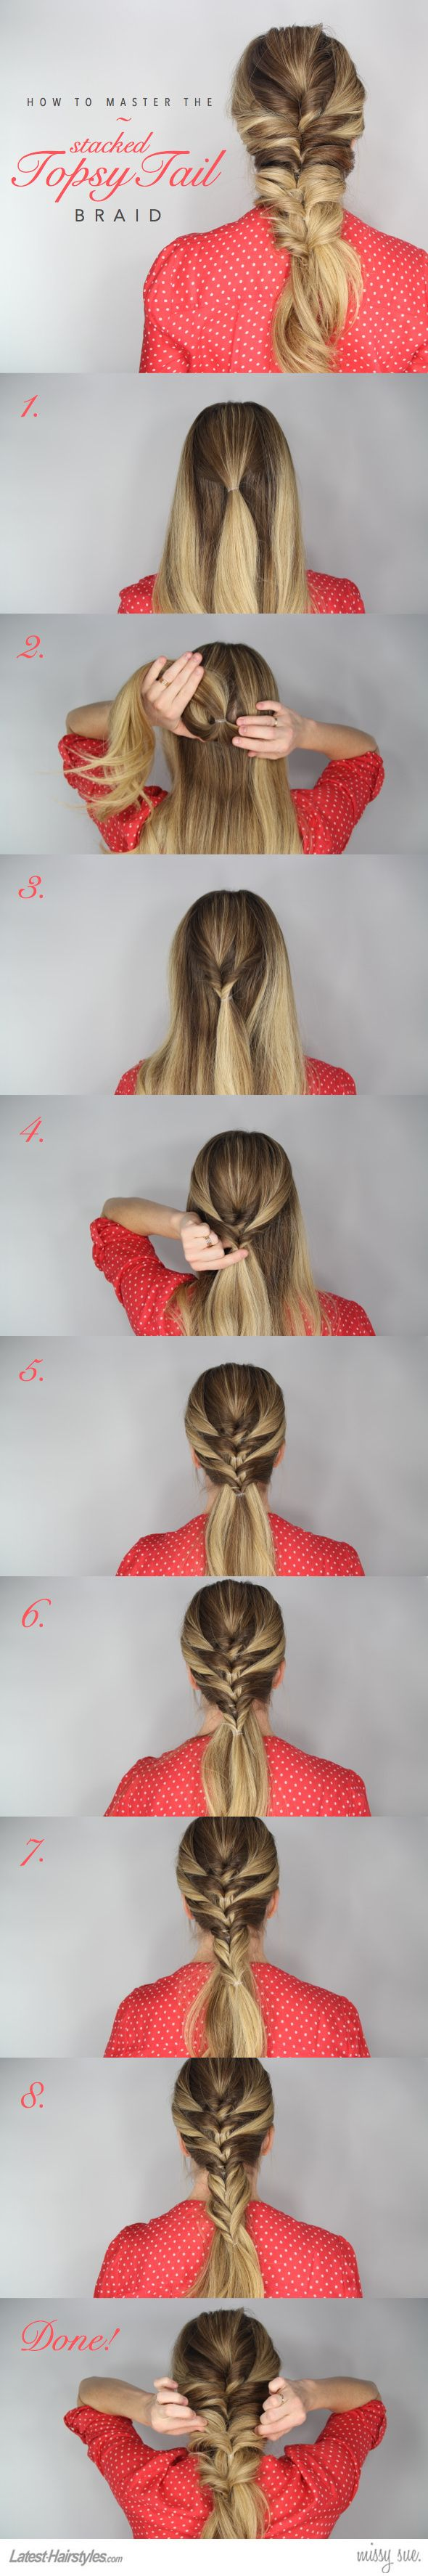 Stacked topsy tail braid tutorial things i should do pinterest